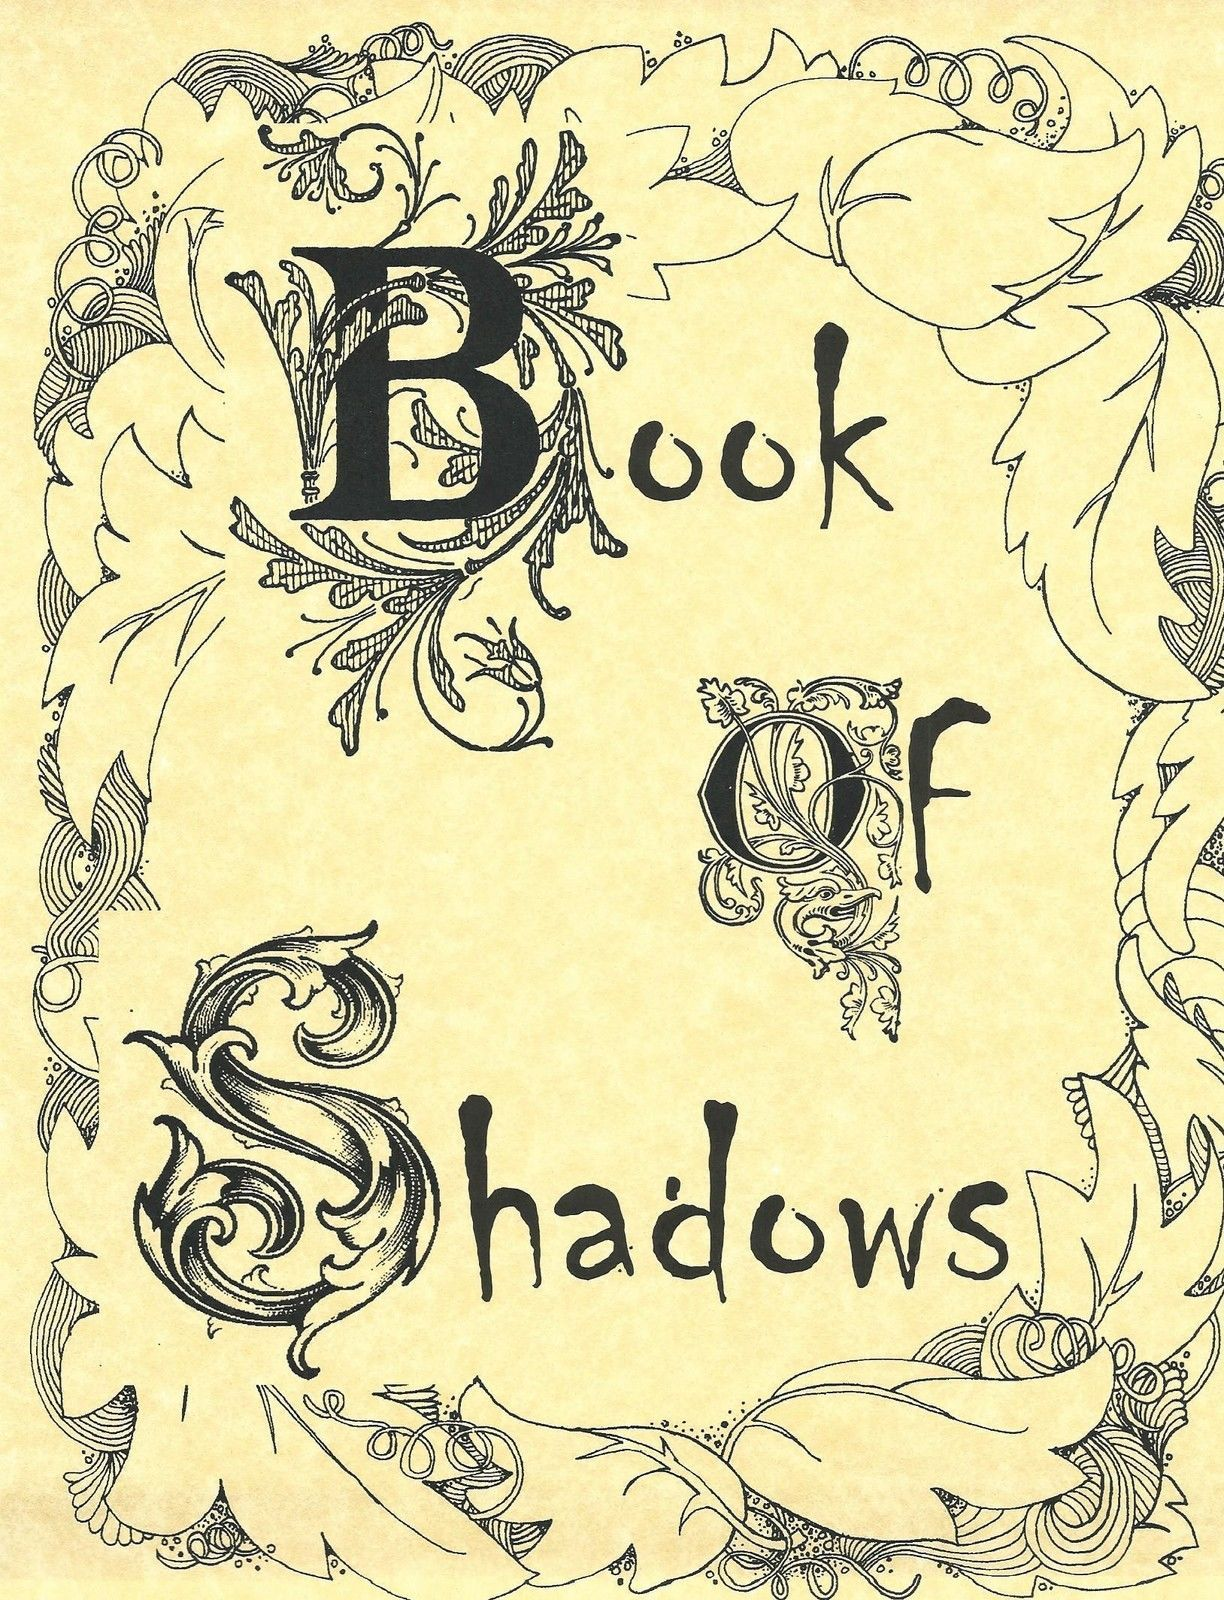 Book Of Shadows Cover Ideas : Book of shadows cover art pixshark images